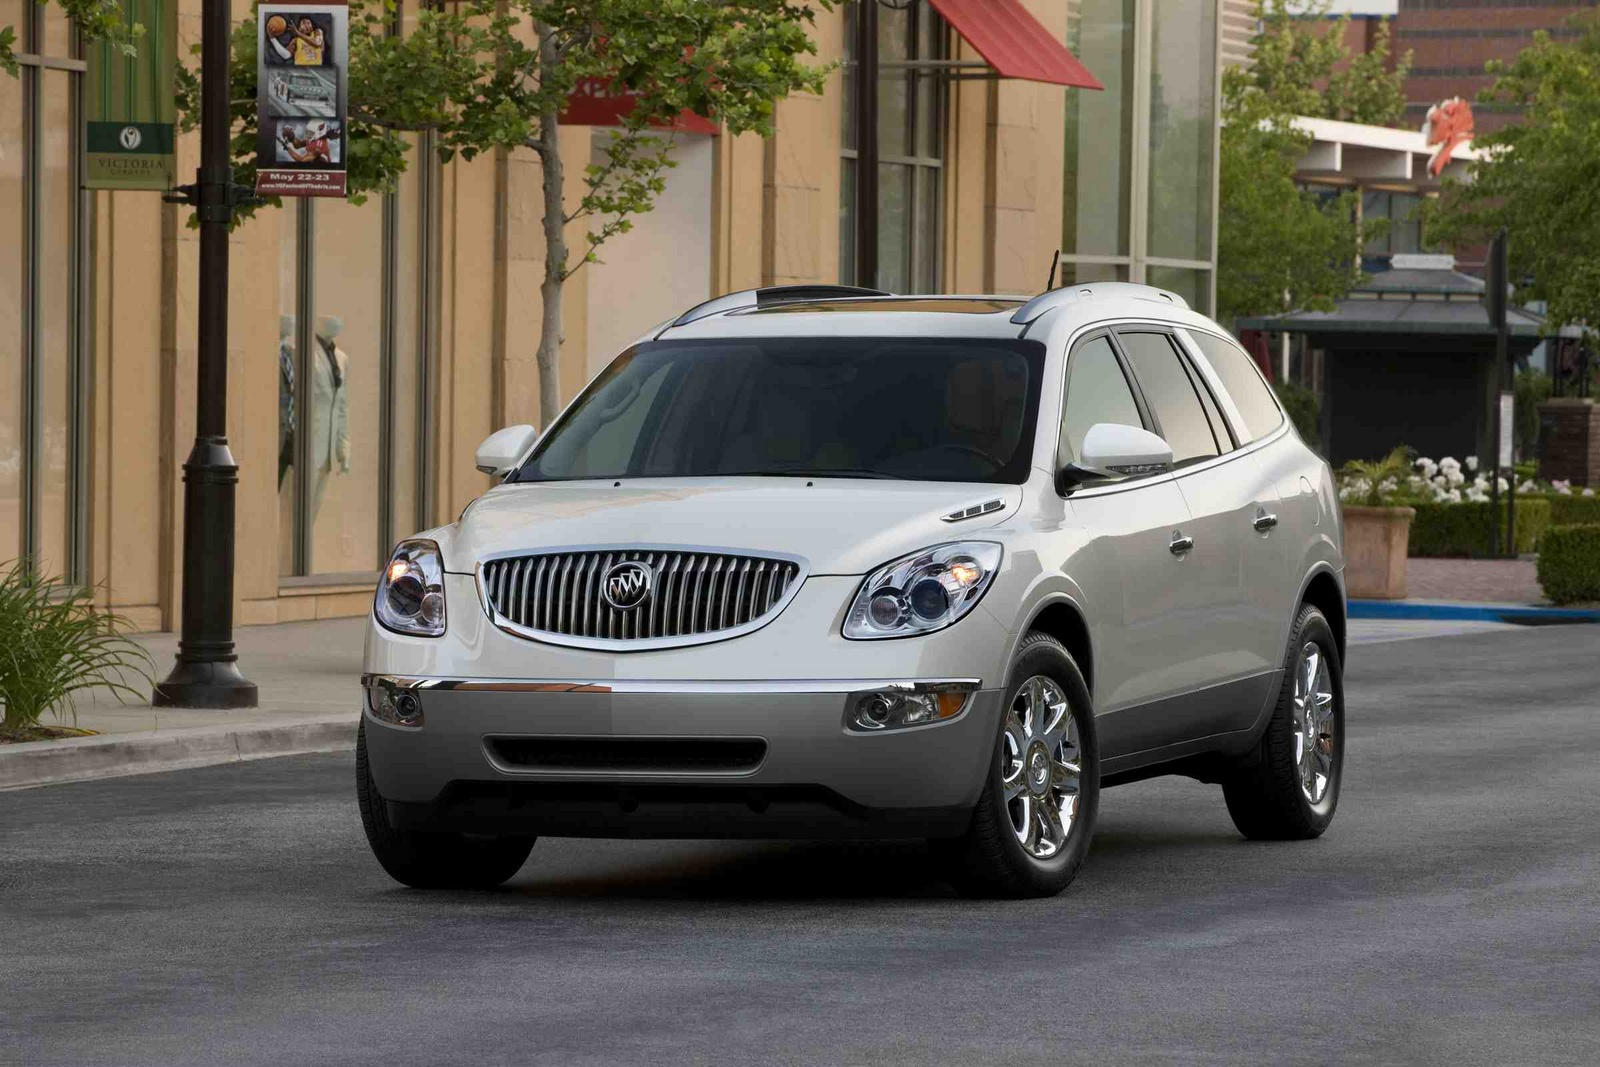 Home / Research / Buick / Enclave / 2012